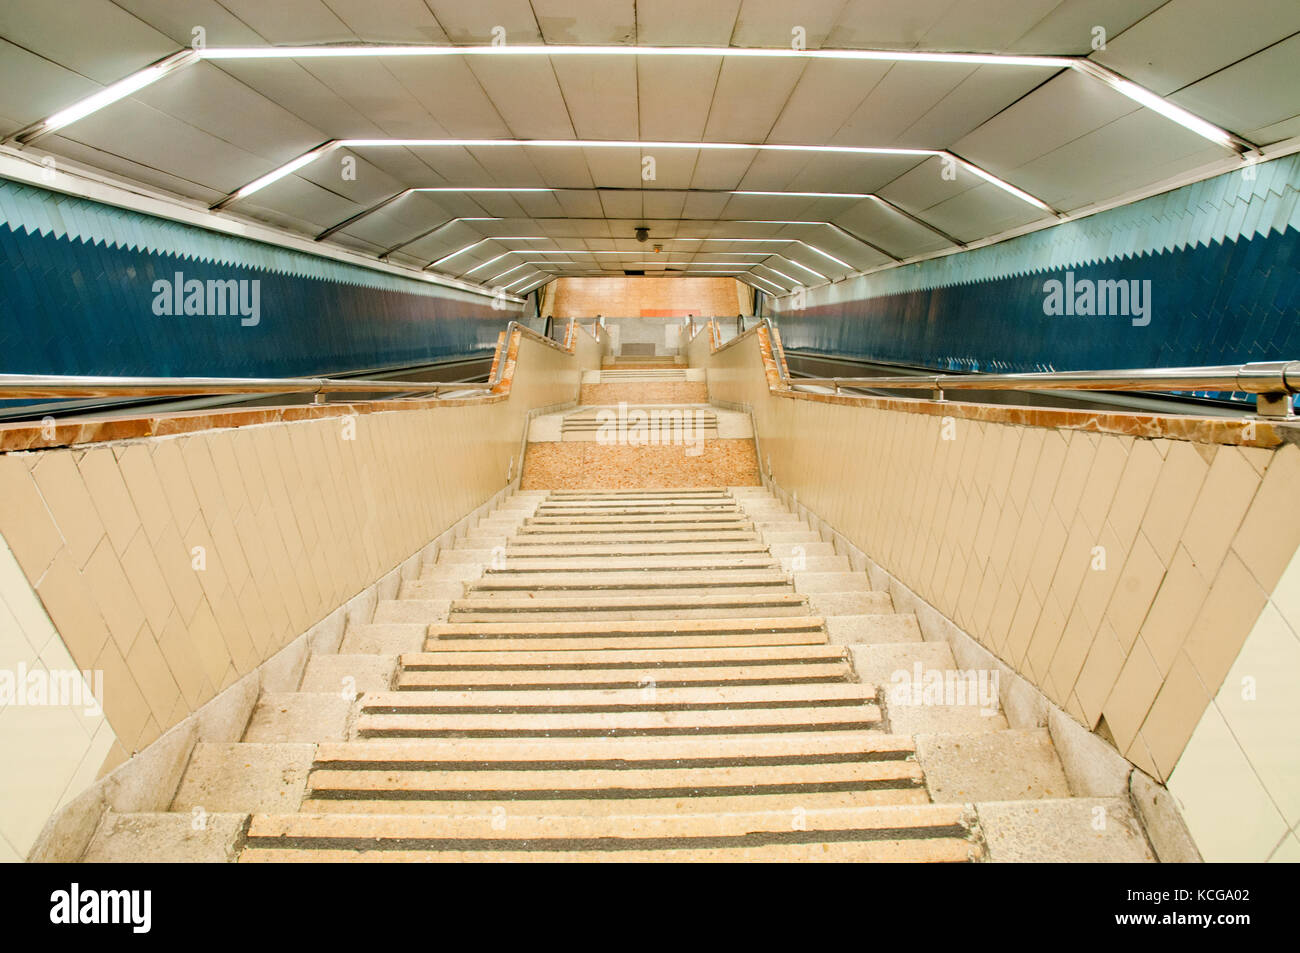 Underground stairs, view from above. Madrid, Spain. - Stock Image